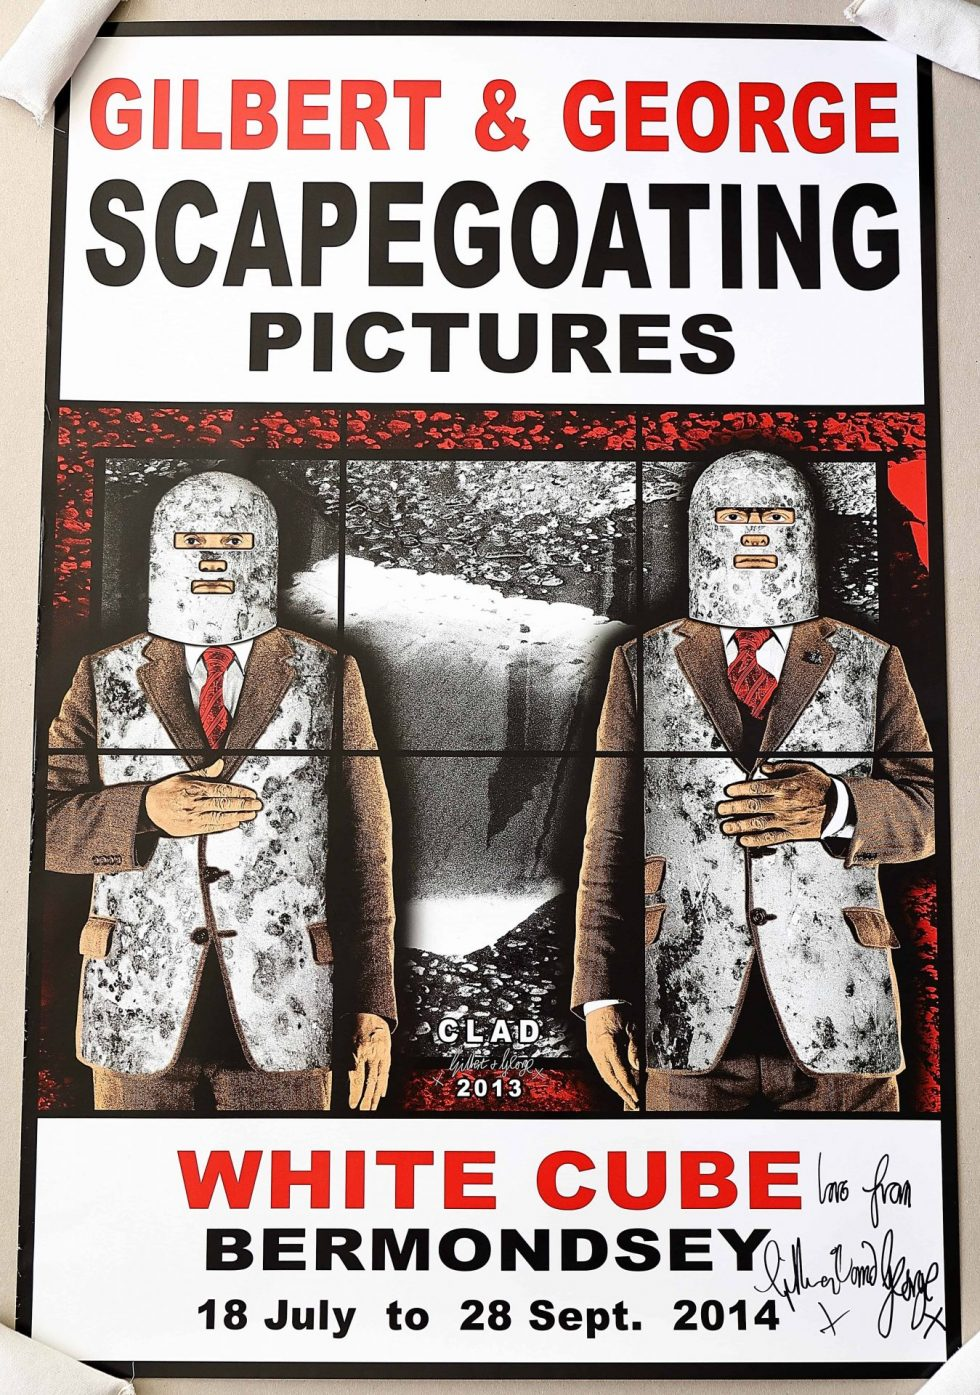 Lot #9502 – Gilbert & George Signed Scapegoating Pictures Clad Poster Art Gilbert & George